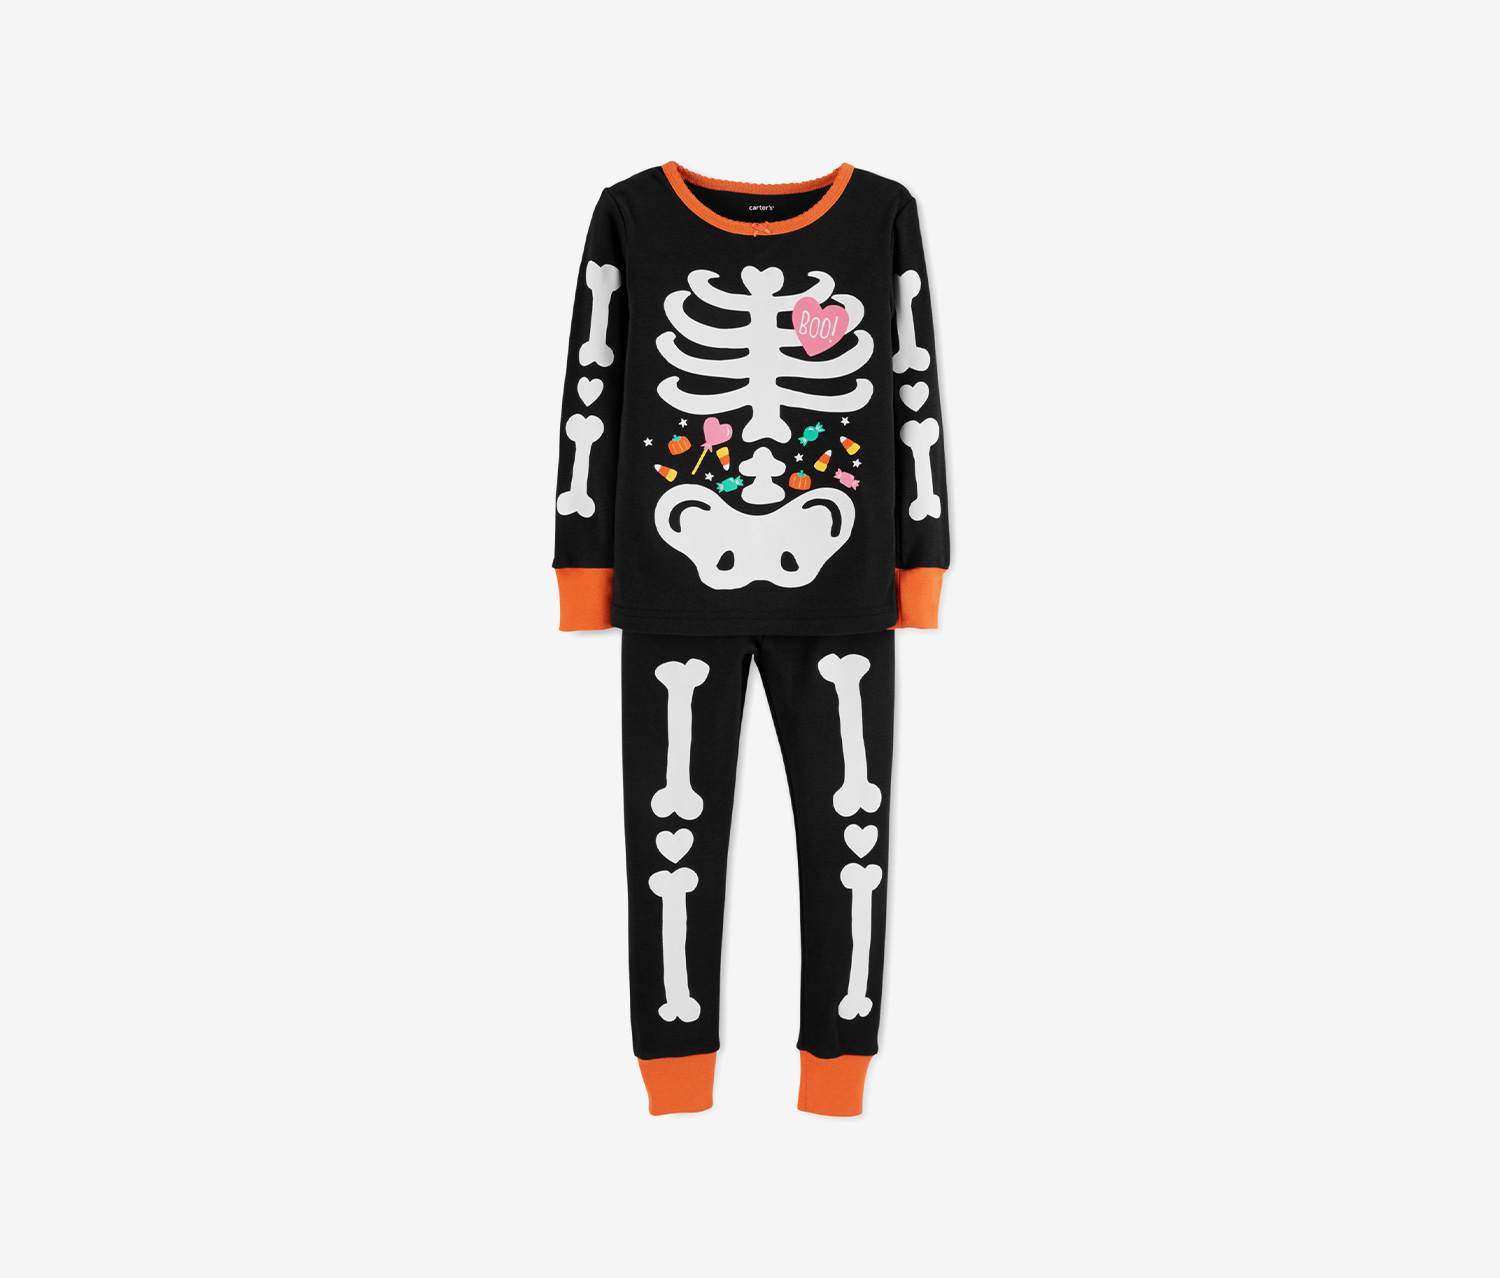 Toddlers Girl's 2pc. Skeleton Print Top & Legging Set, Black